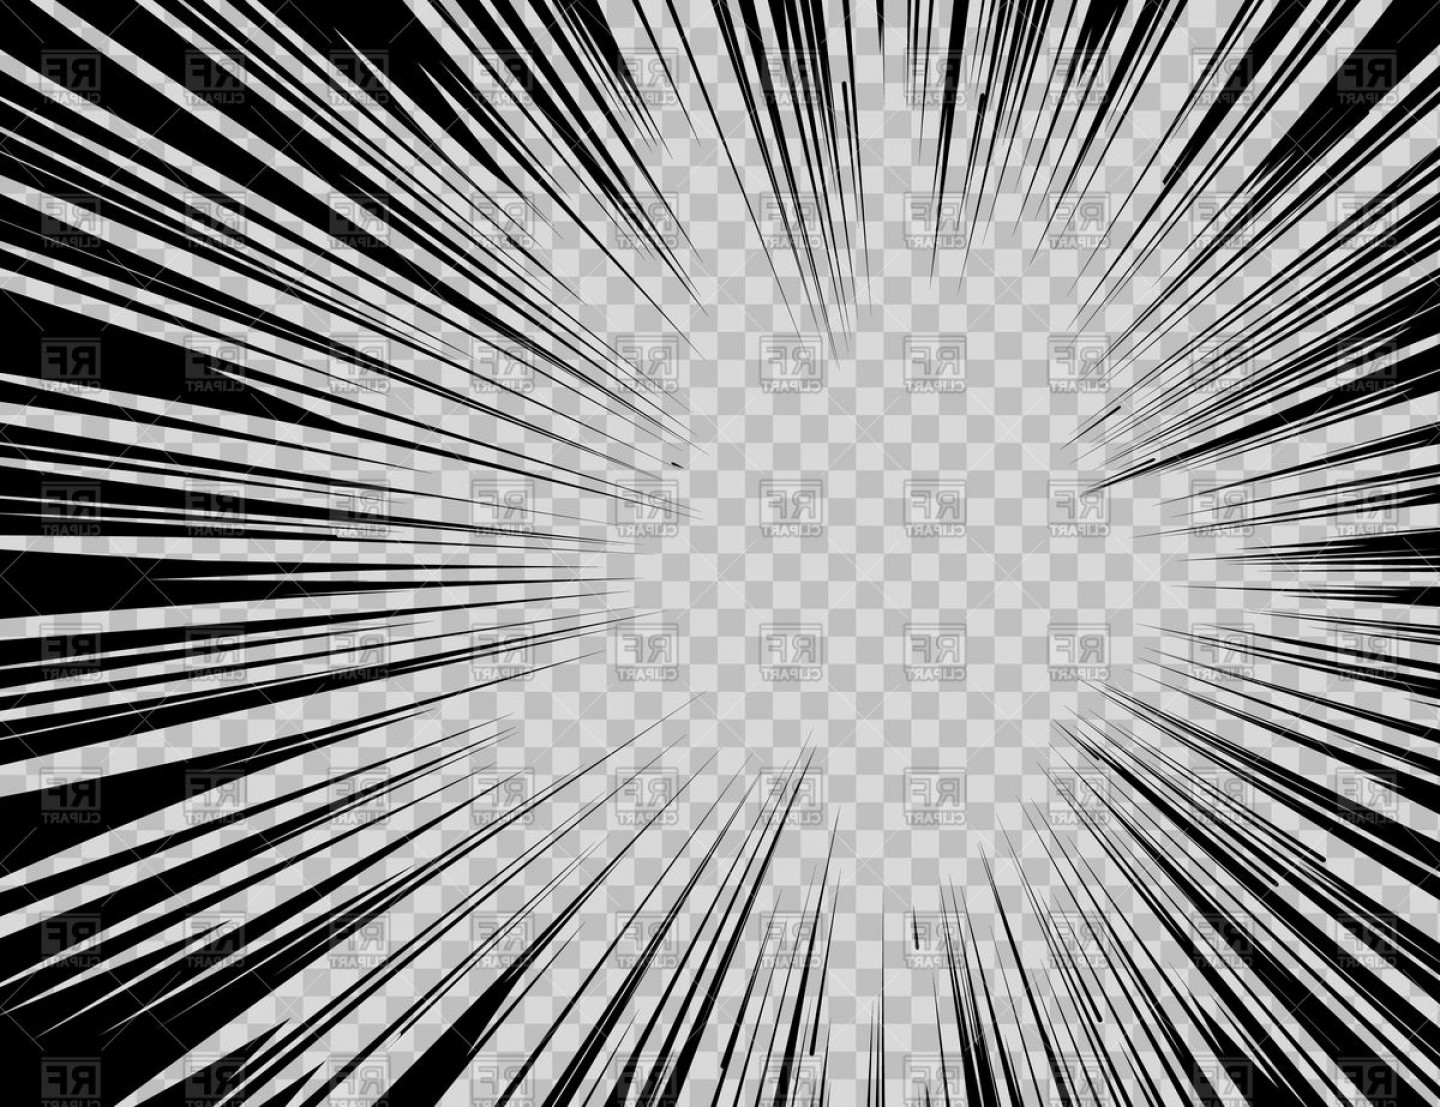 Radial clipart image black and white stock Abstract Comic Book Flash Explosion Radial Lines On ... image black and white stock